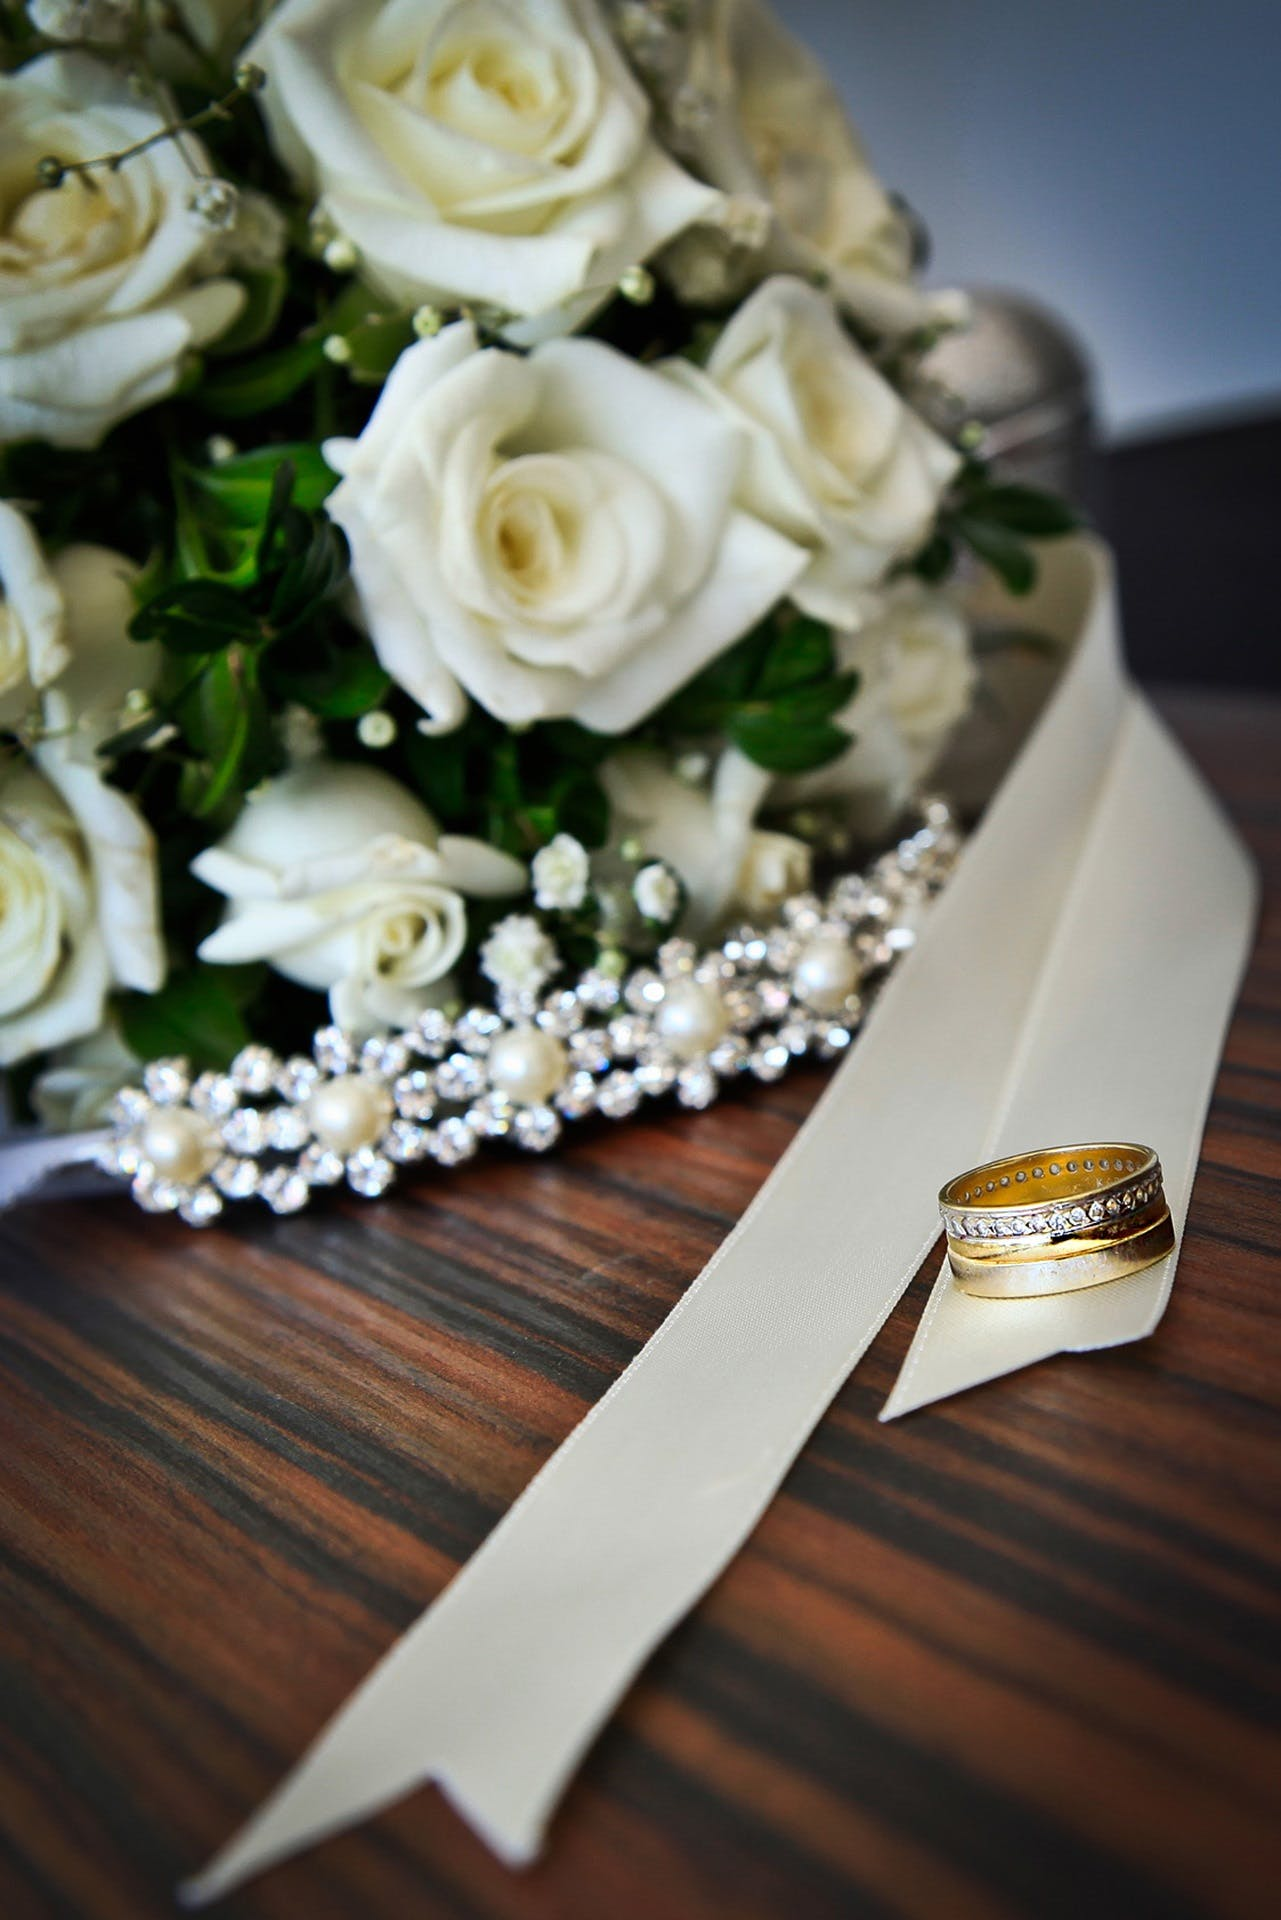 White Roses Bouquet Beside Gold-colored Ring